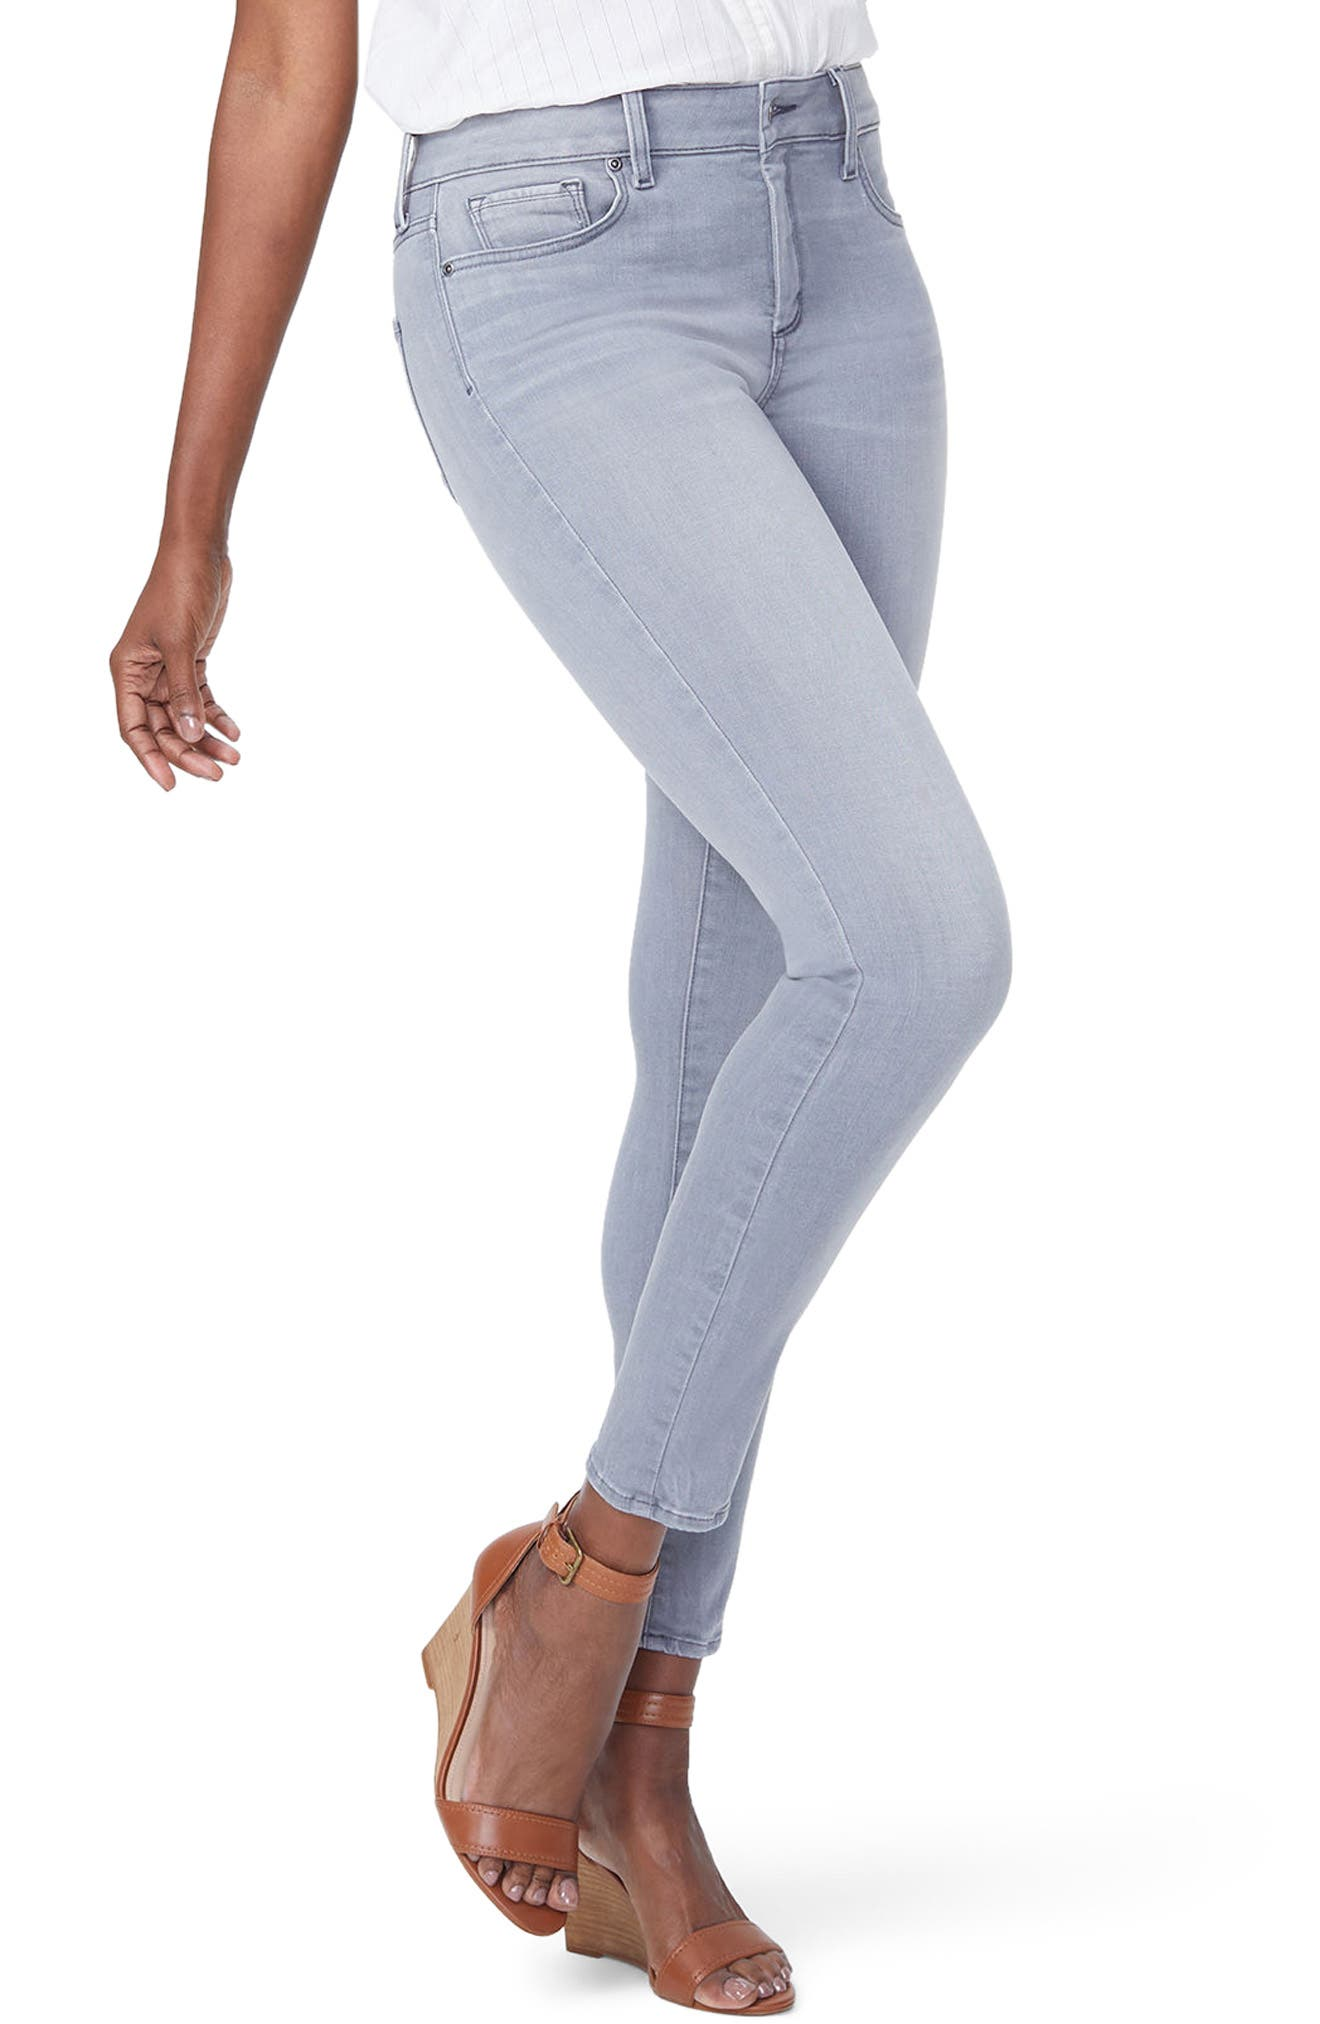 Ami Skinny Jeans,                             Main thumbnail 1, color,                             Carbon Beach